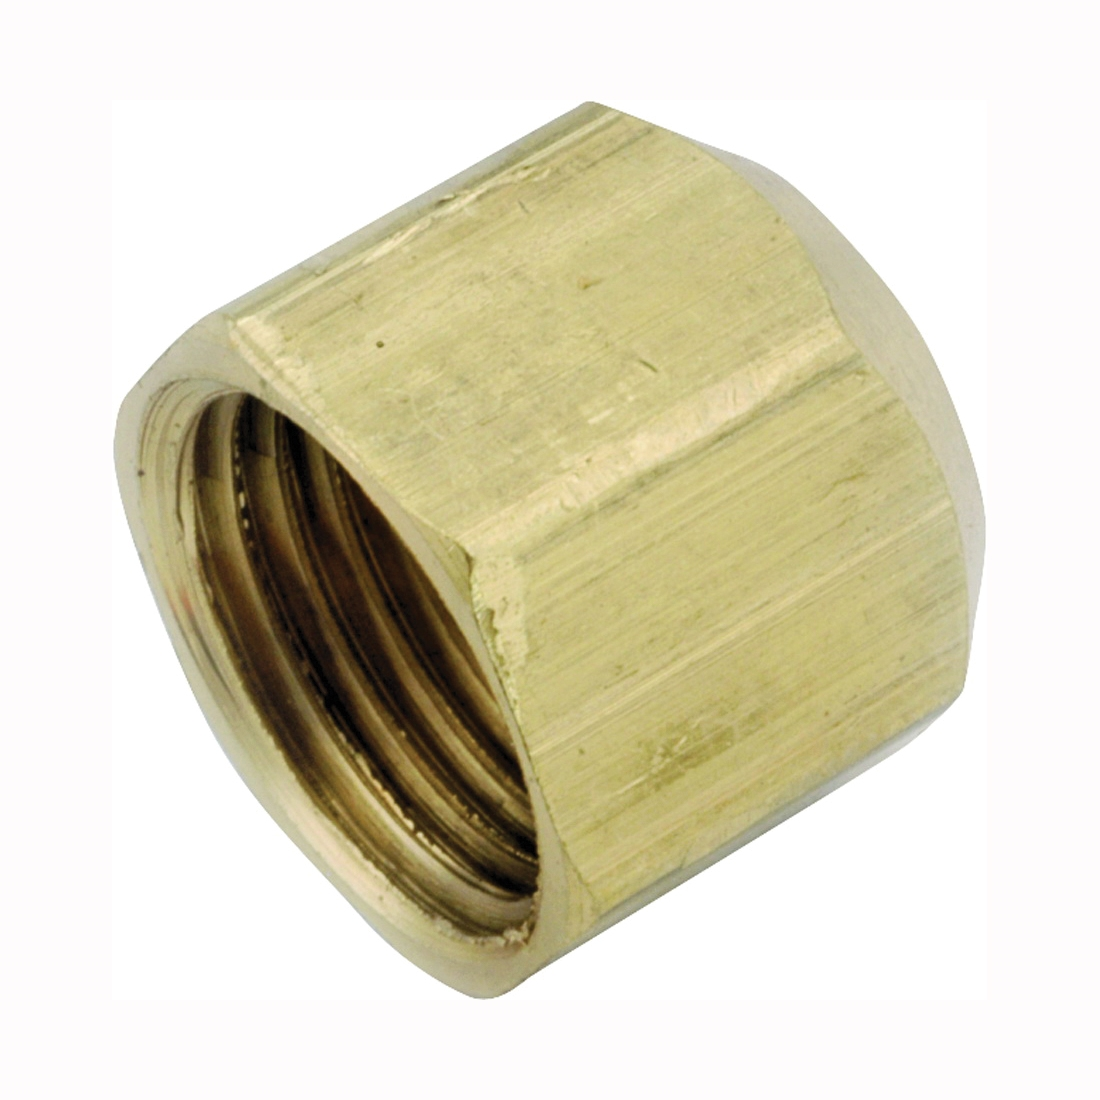 Picture of Anderson Metals 754040-04 Tube Cap, 1/4 in, Flare, Brass